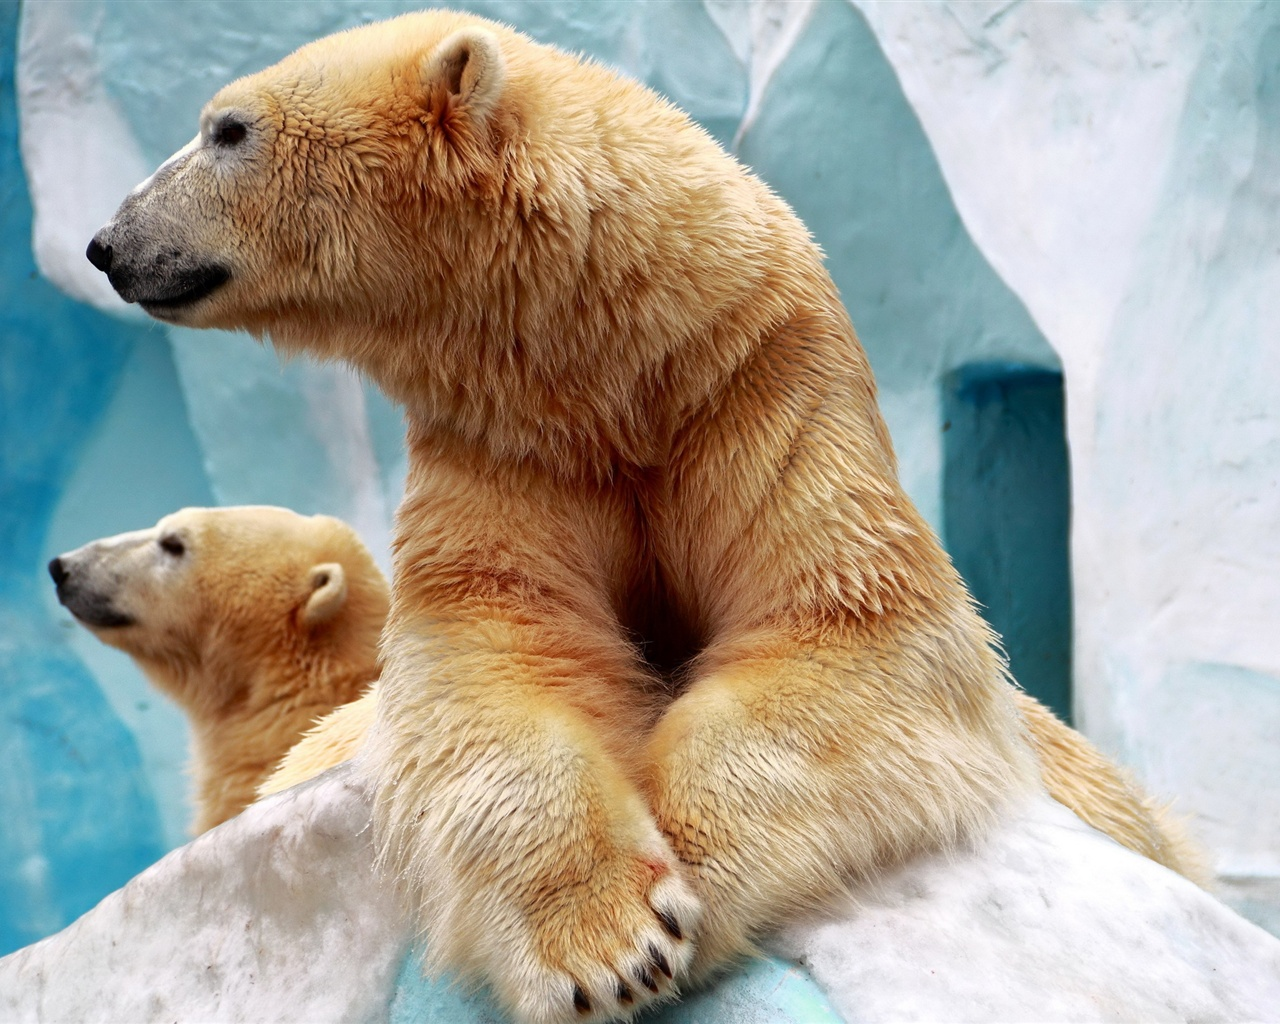 Two polar bears wallpaper - 1280x1024